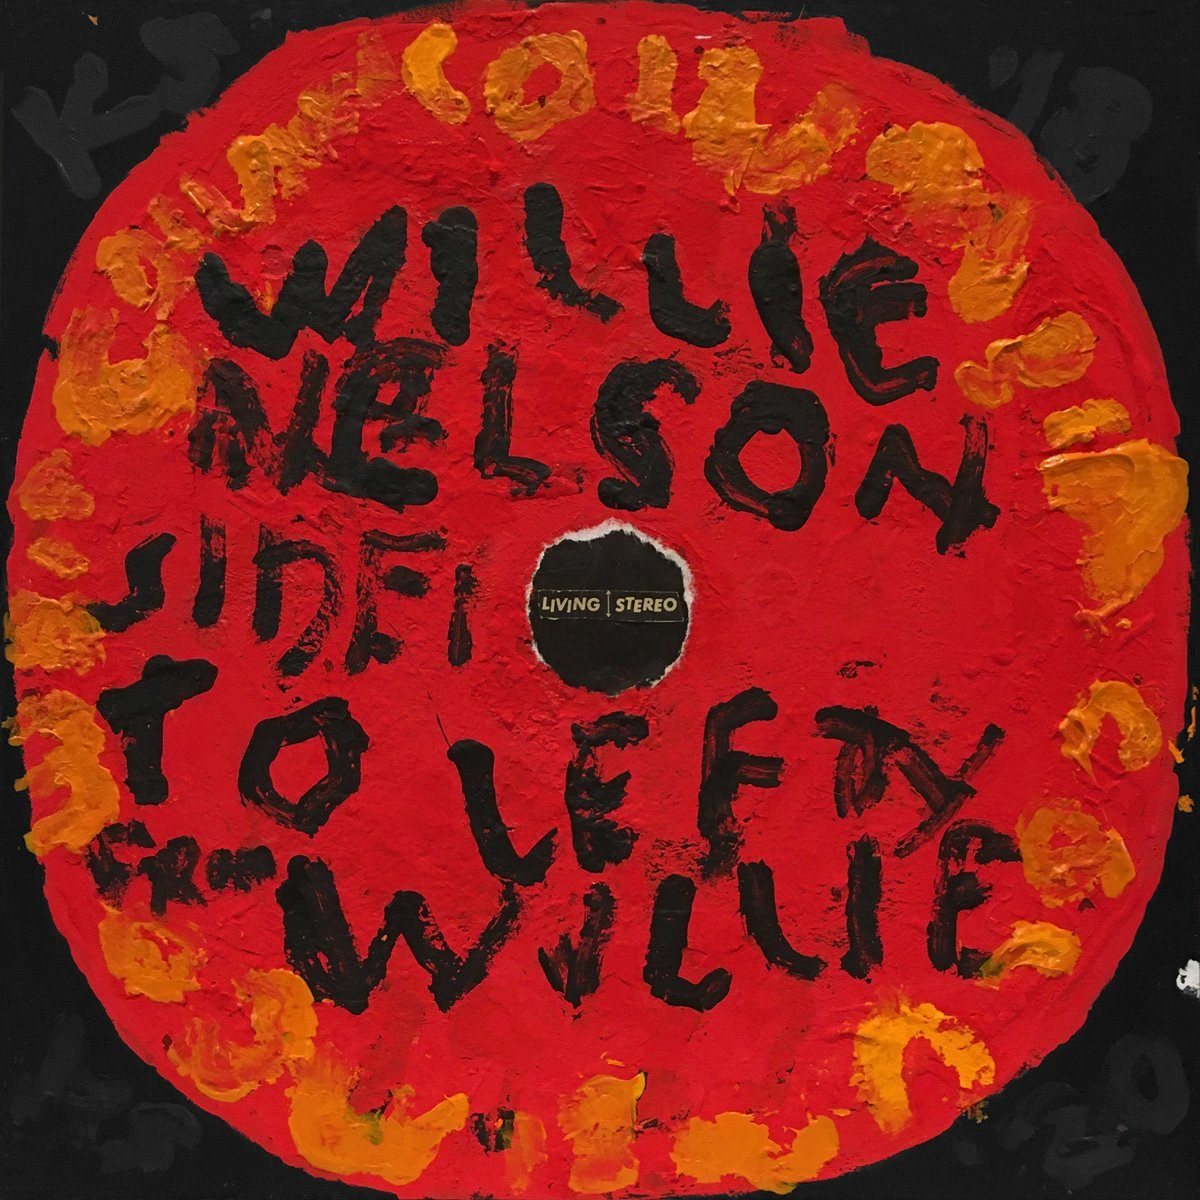 Willie Nelson - To Lefty From Willie - Kerry Smith - Yard Dog Art